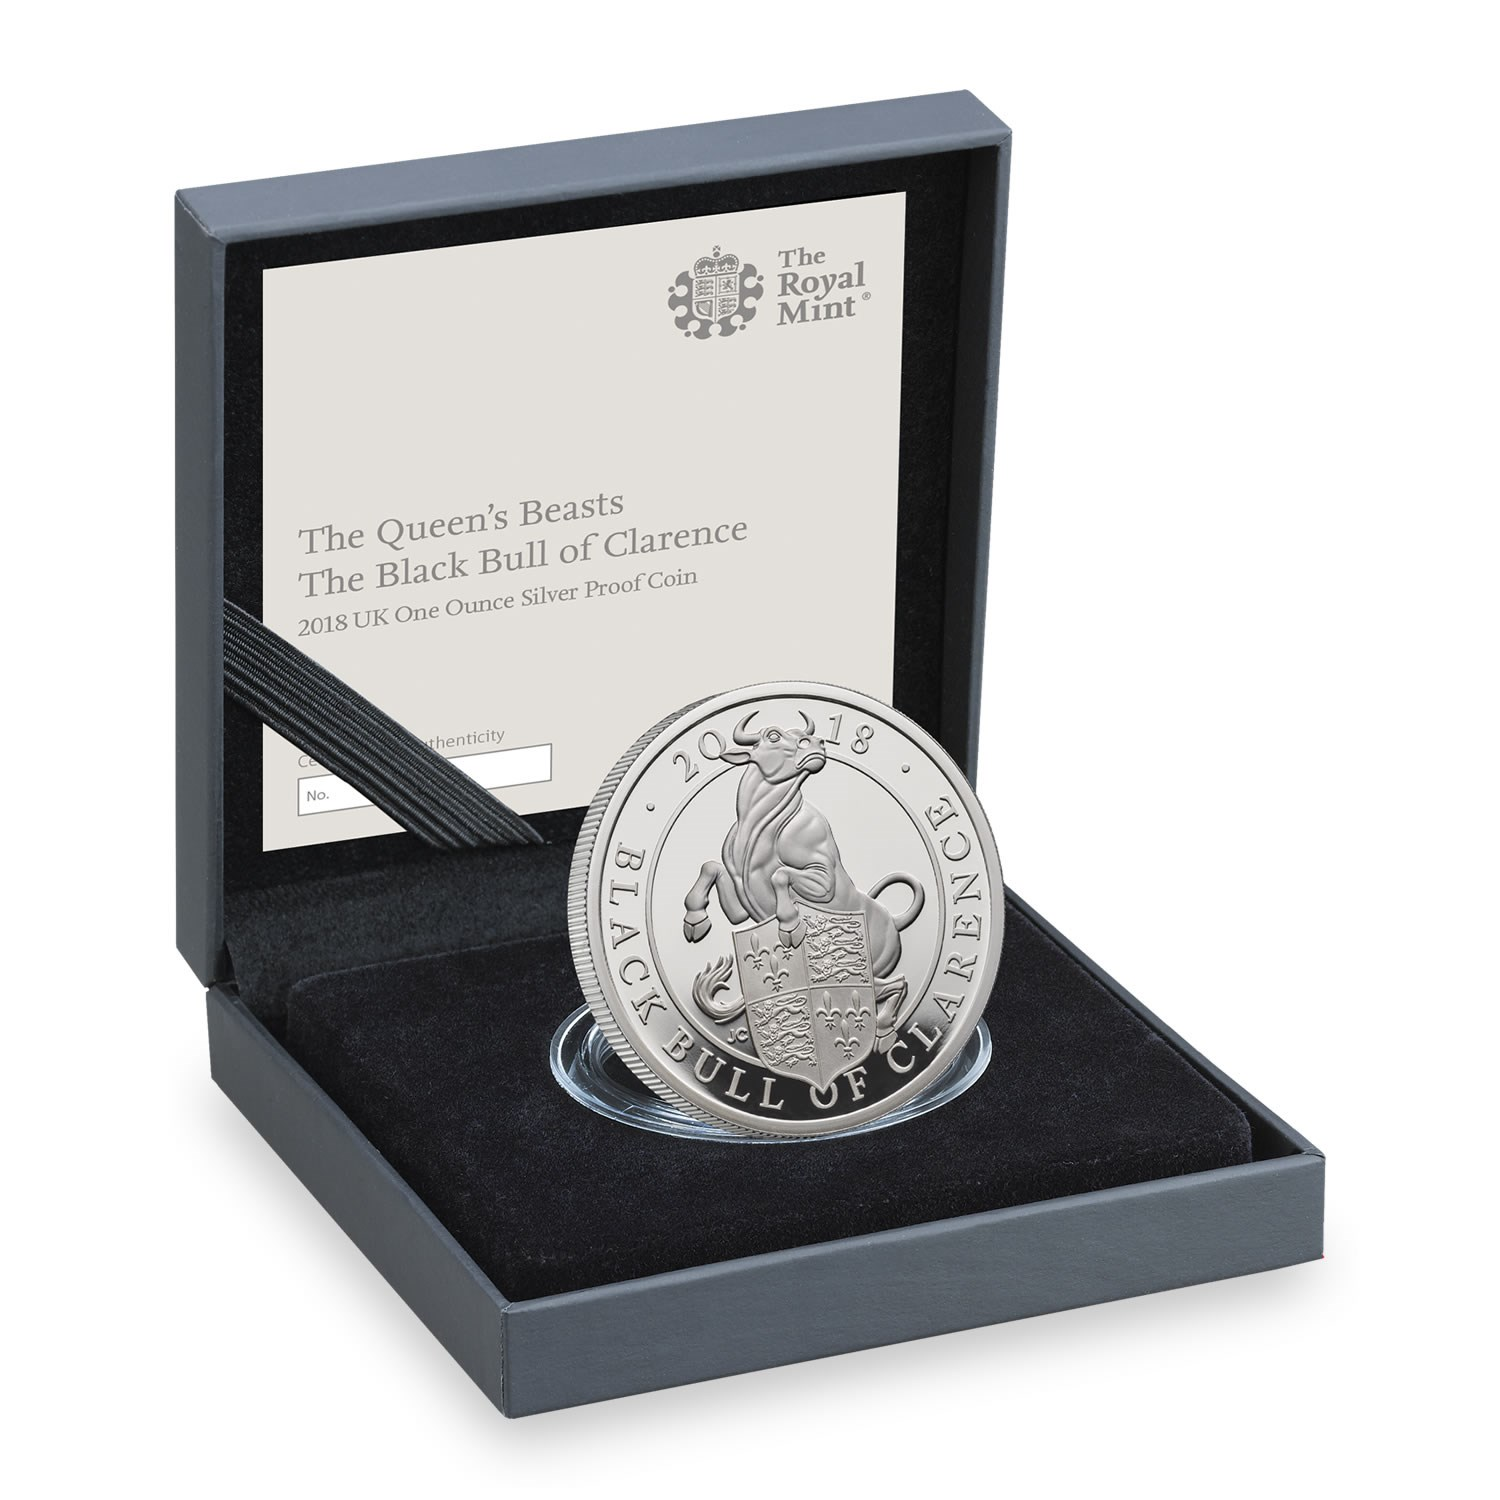 The Queen's Beasts The Black Bull of Clarence 2018 UK One Ounce Silver Proof Coin